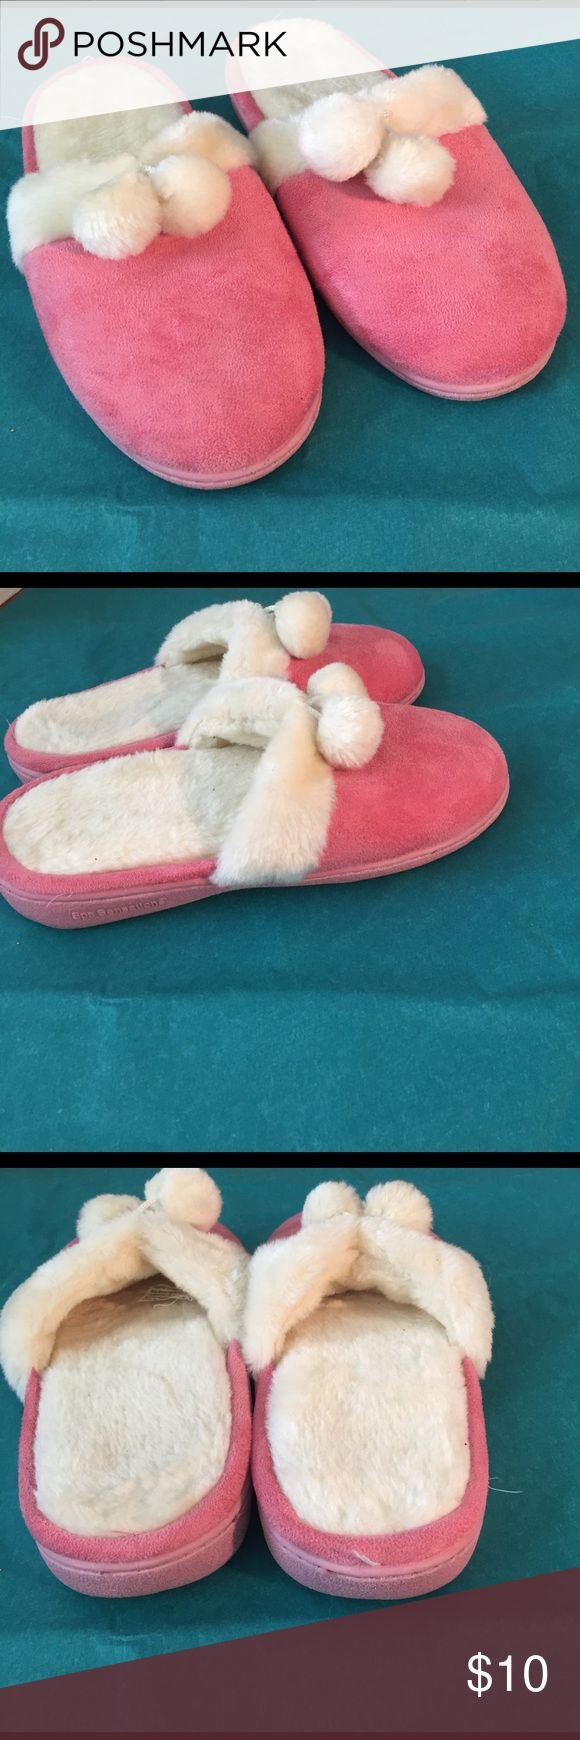 New Spa Sensations padded slippers size Medium 7/8 New Spa Sensations padded slippers size Medium 7/8. Comes from a smoke free home, ships within one business day, no holds, no trades, thank you. SPA Accessoires Shoes Slippers